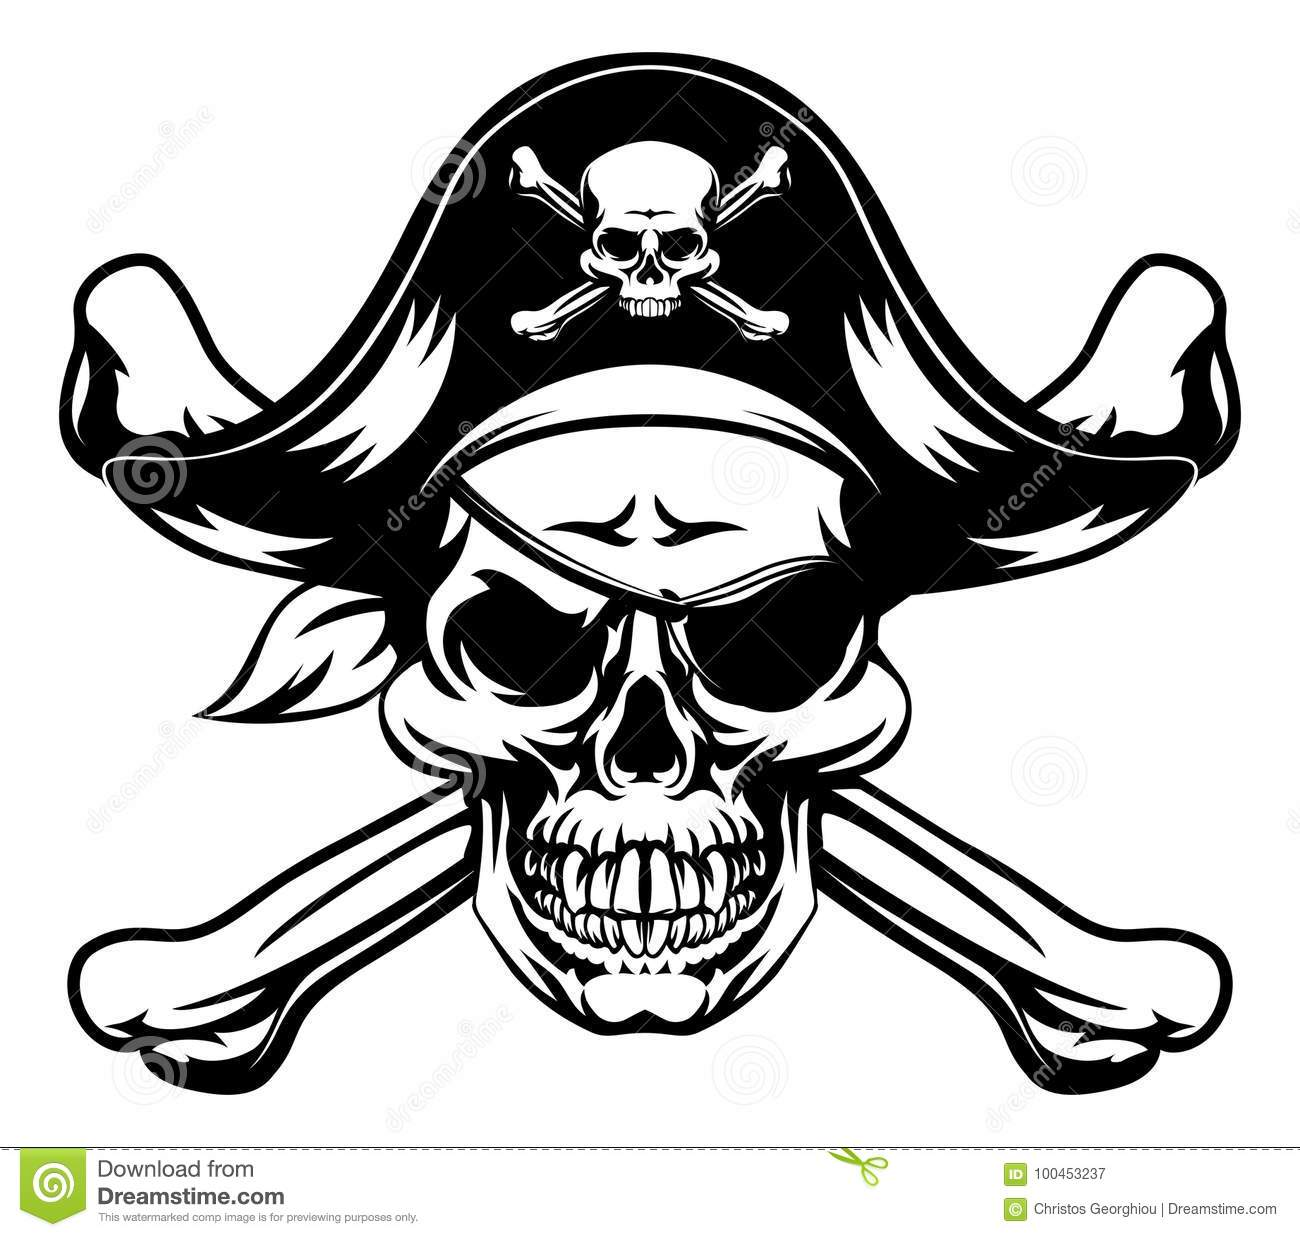 Crossbones Pirate Skull Stock Illustrations 7 147 Crossbones Pirate Skull Stock Illustrations Vectors Clipart Dreamstime